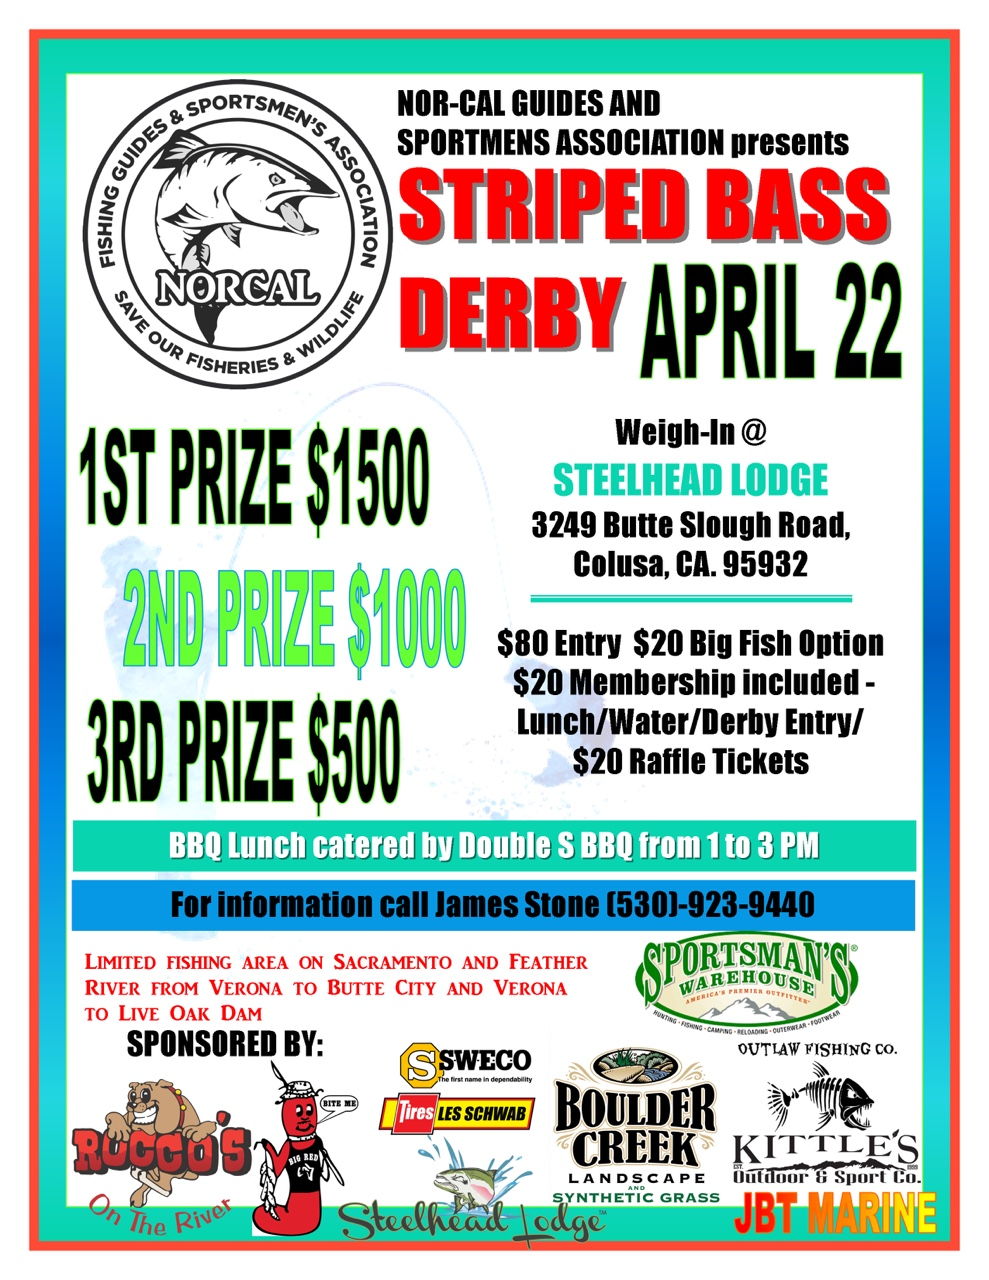 NCGASA Striper derby flyer!